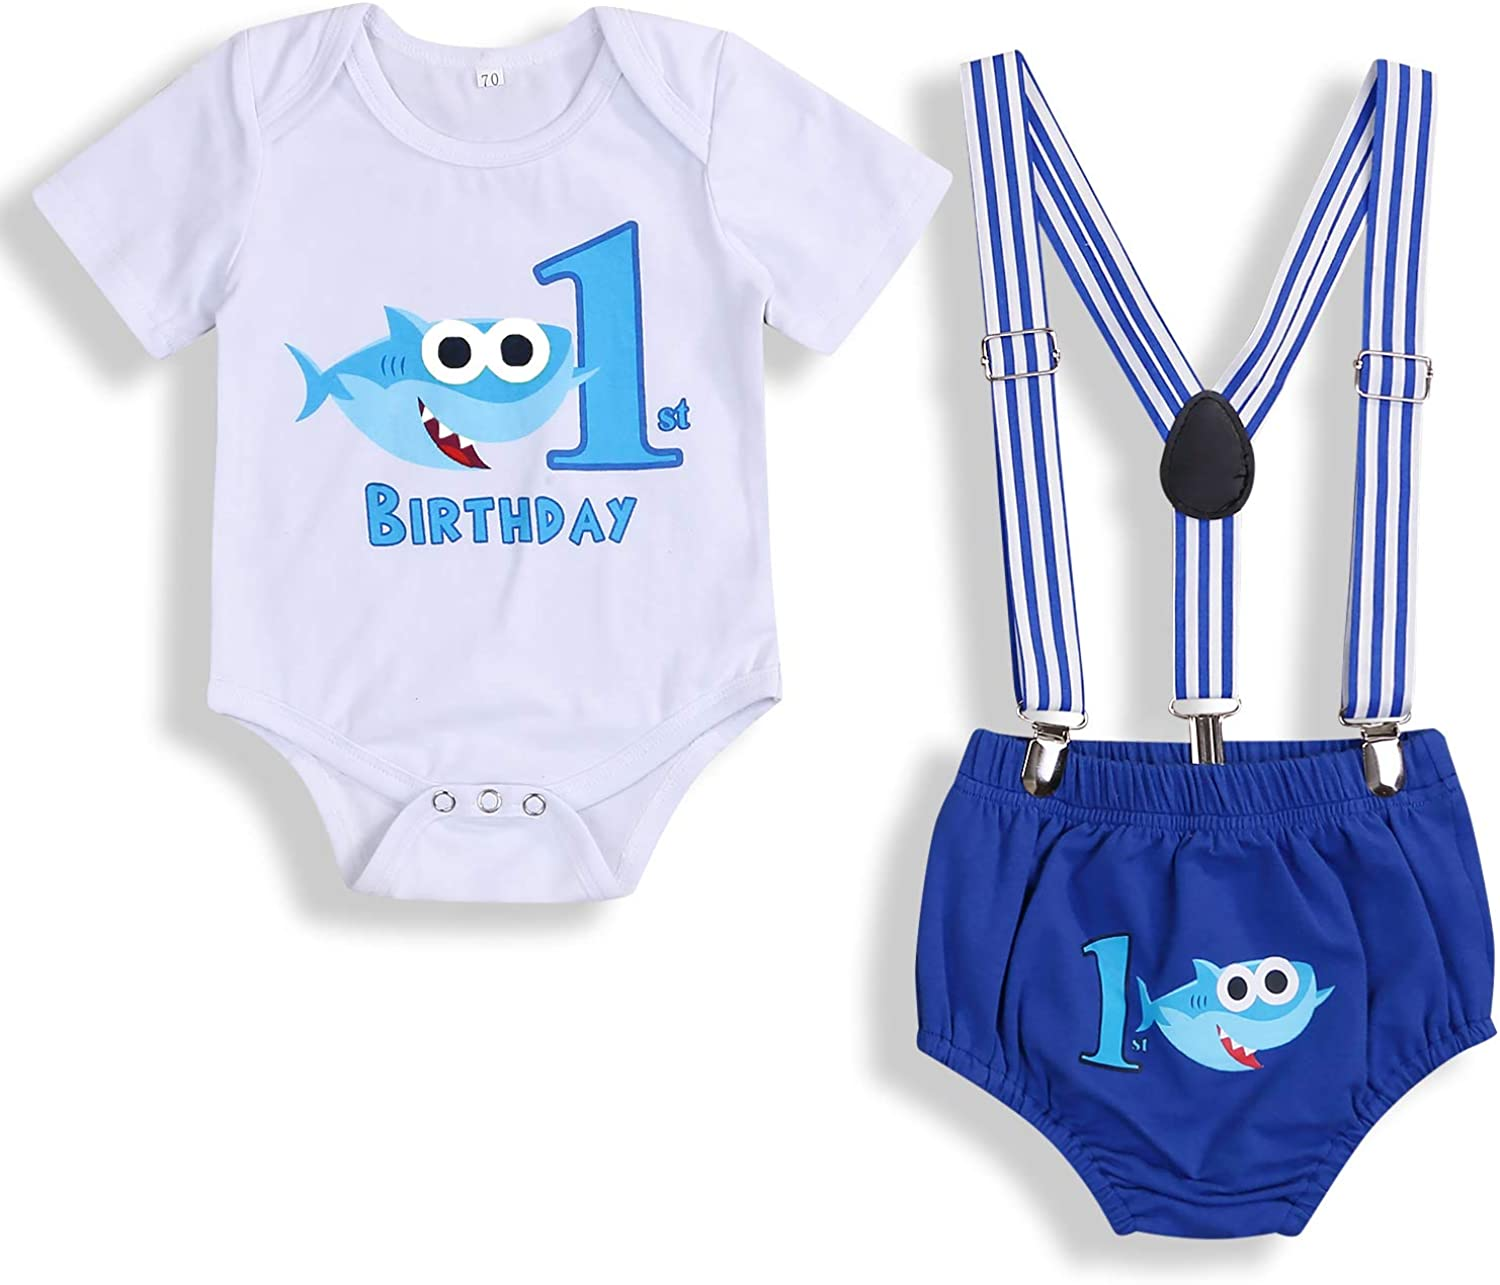 Baby Birthday Clothes 1st Shark Boys Girls Short Sleeve Bowtie Romper Shirt+Strap Suspender Shorts Cake Smash Outfits